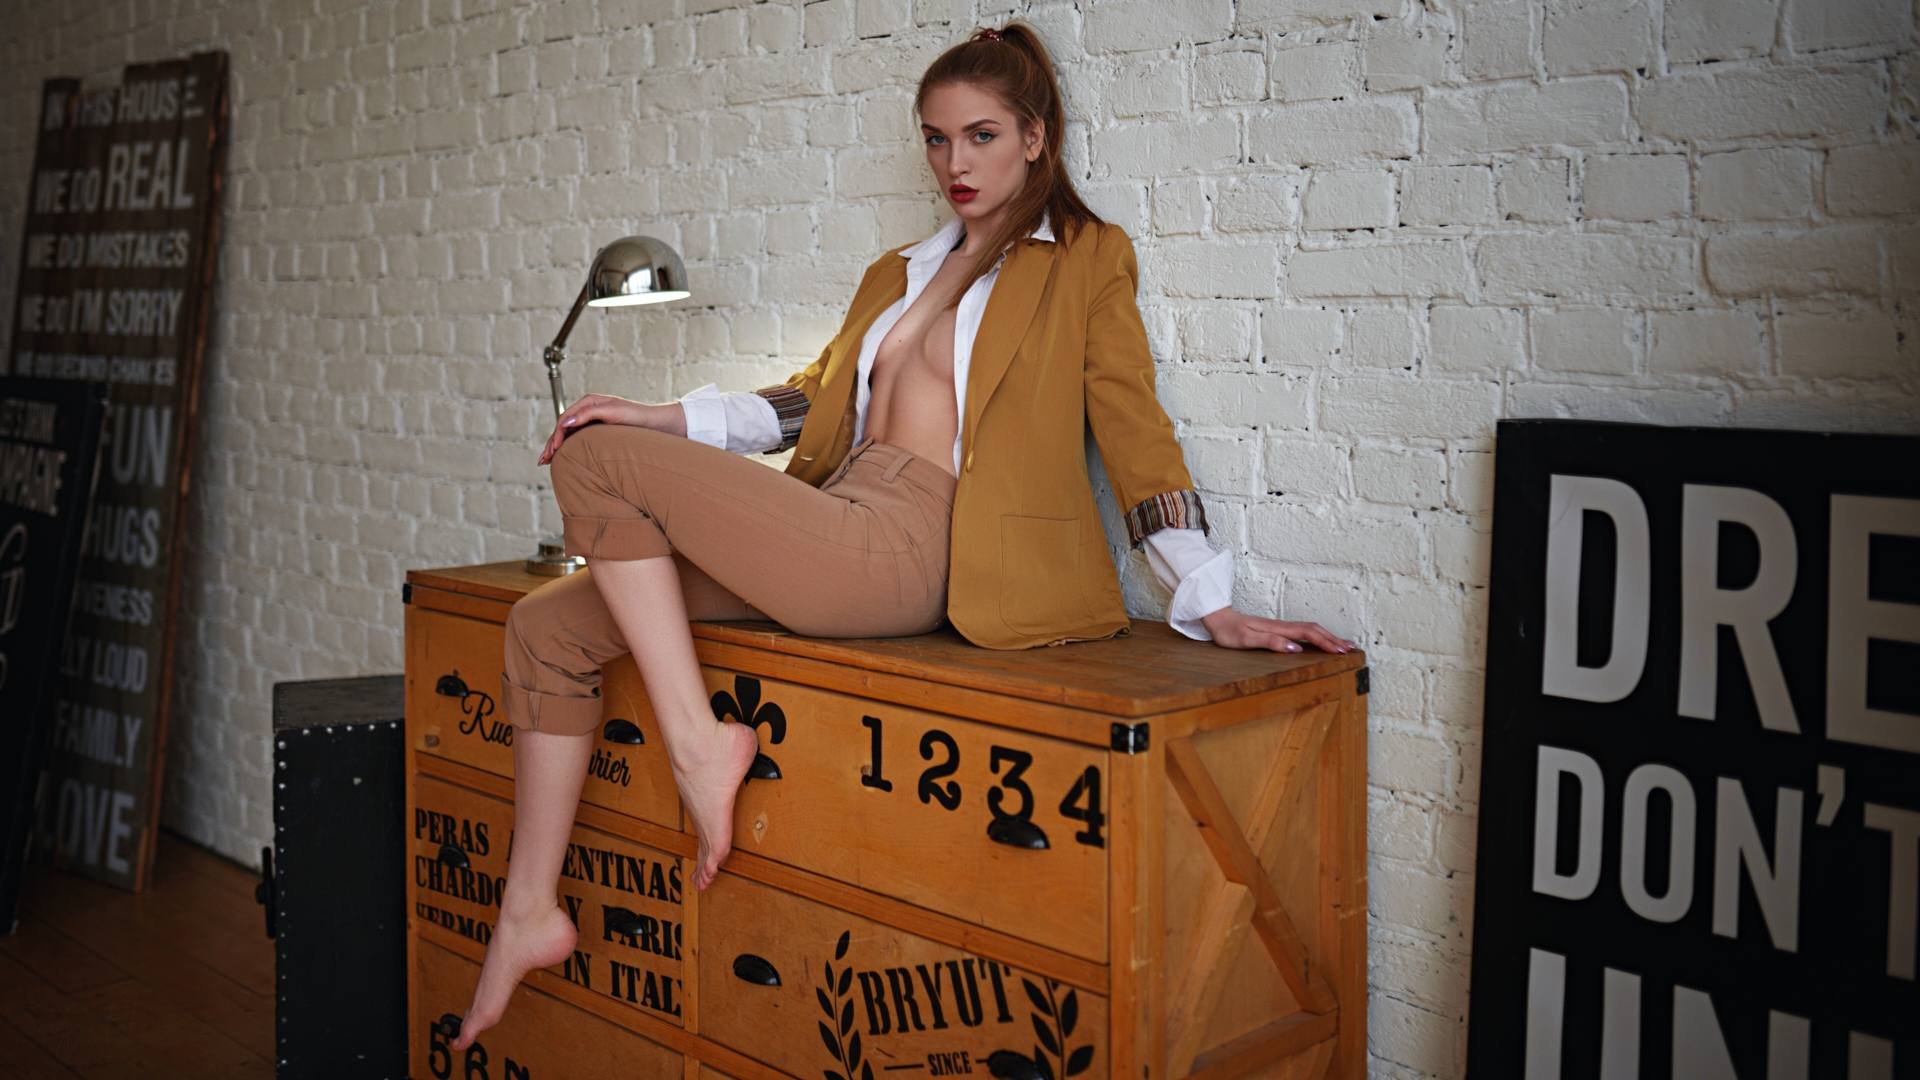 People 1920x1080 women Sergey Fat wall sitting bricks red lipstick ponytail open shirt boobs no bra pants lamp Fia Meos women indoors brunette barefoot yellow jacket white shirt unbuttoned shirt hands on knees unbuttoned tied hair hand on leg white wall sitting on the table makeup looking at viewer